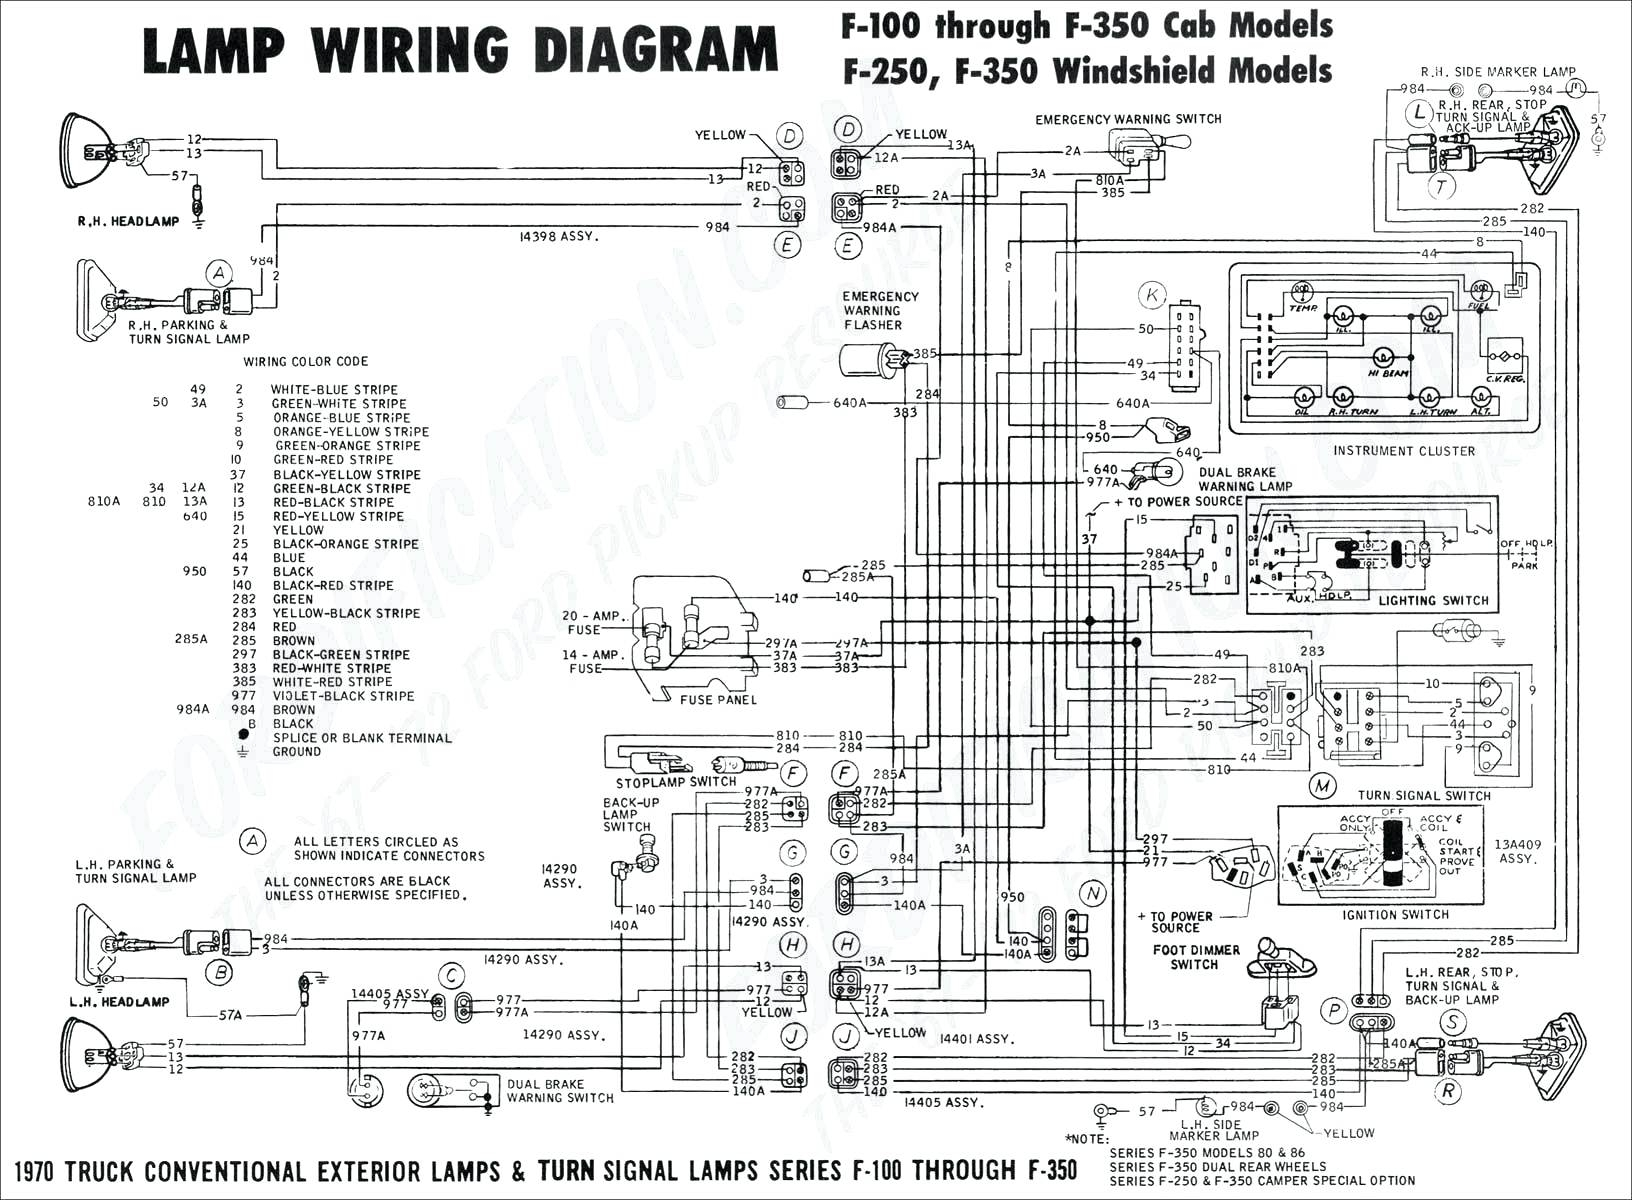 1975 Fiat 124 Spider Wiring Diagram